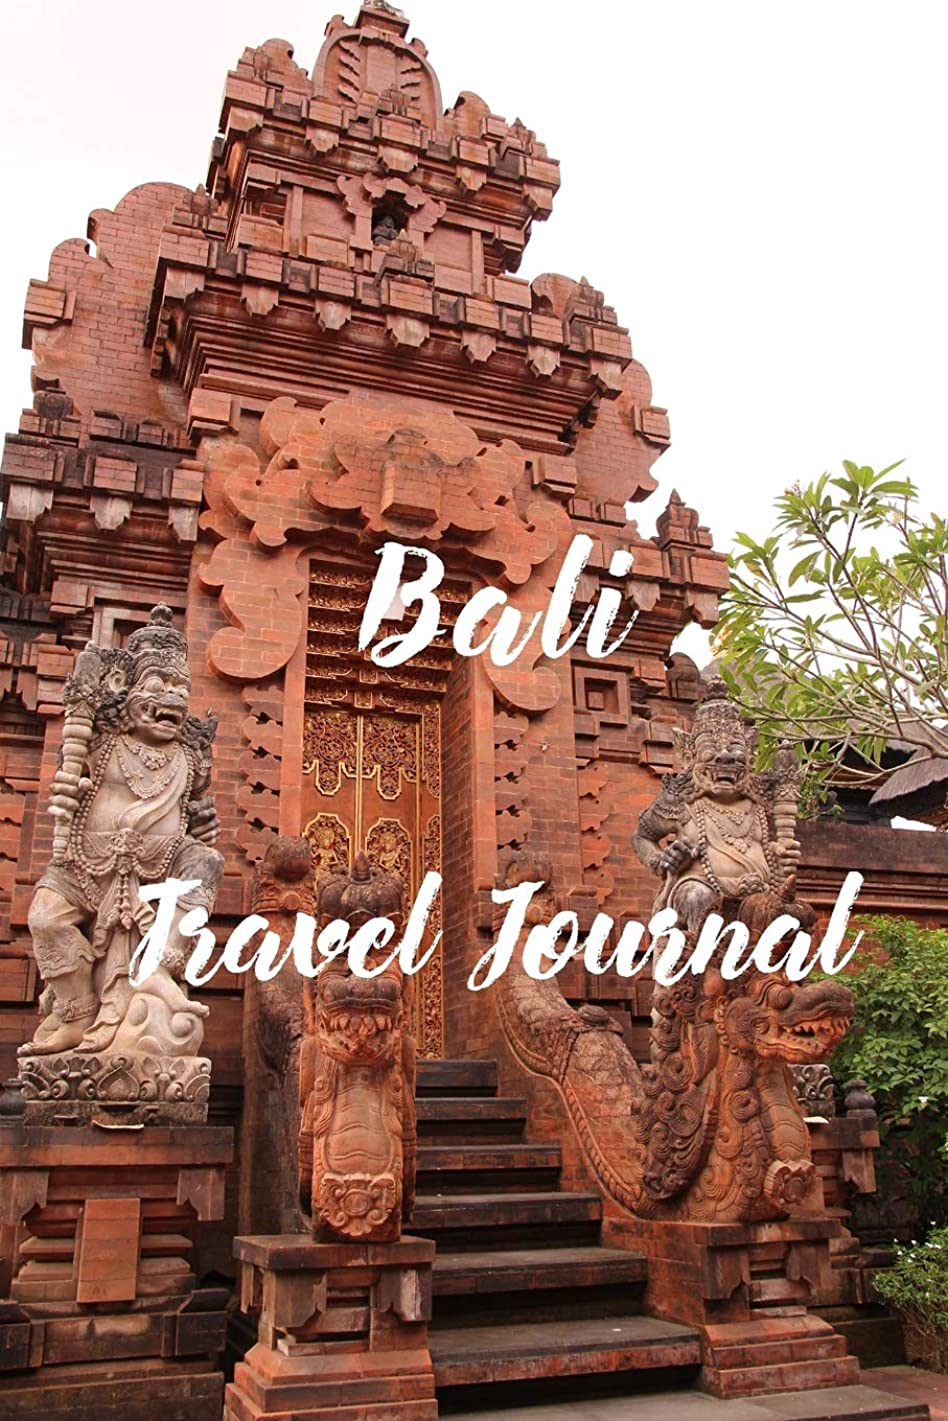 Bali Travel Journal: 6x9 Inch Lined Travel Journal/Notebook - We Travel not to escape life, but so life doesn't escape us -Temple, Indonesia